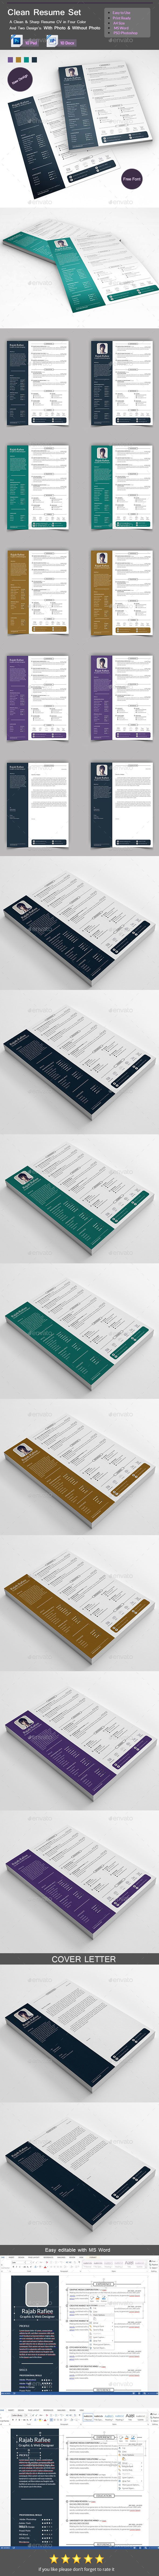 Professional Resume Template PSD. Download here: http://graphicriver.net/item/professional-resume-/15014736?ref=ksioks